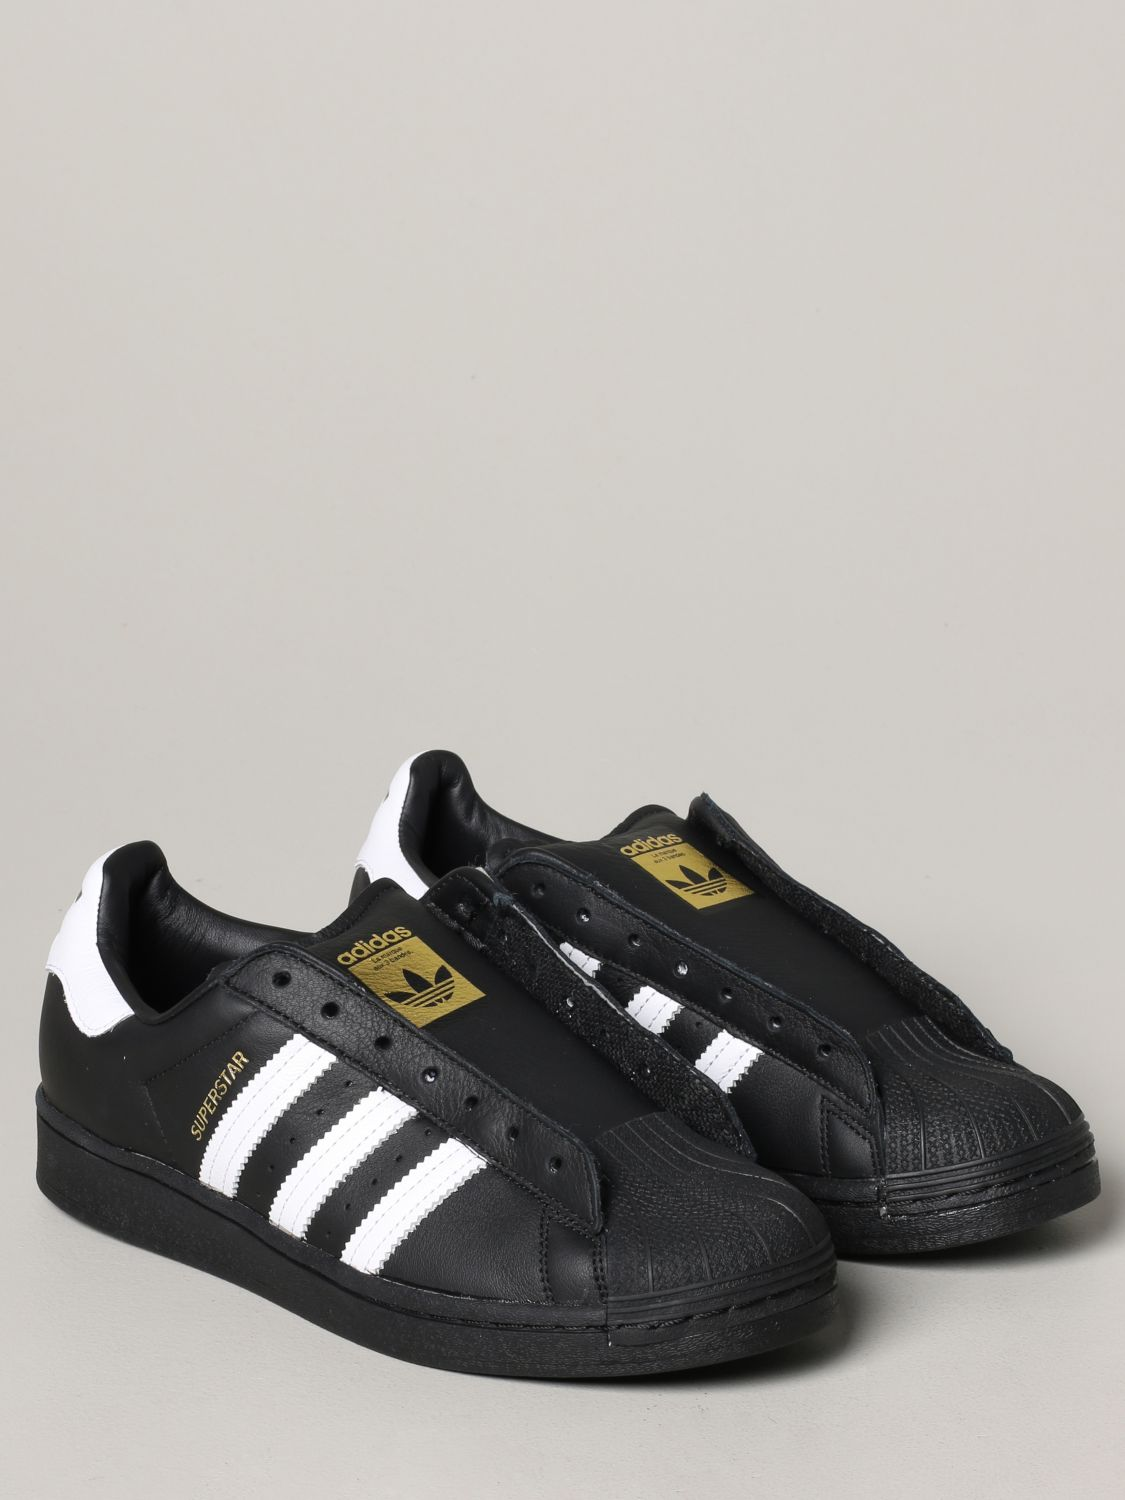 Trainers Adidas Originals: Shoes men Adidas Originals black 2